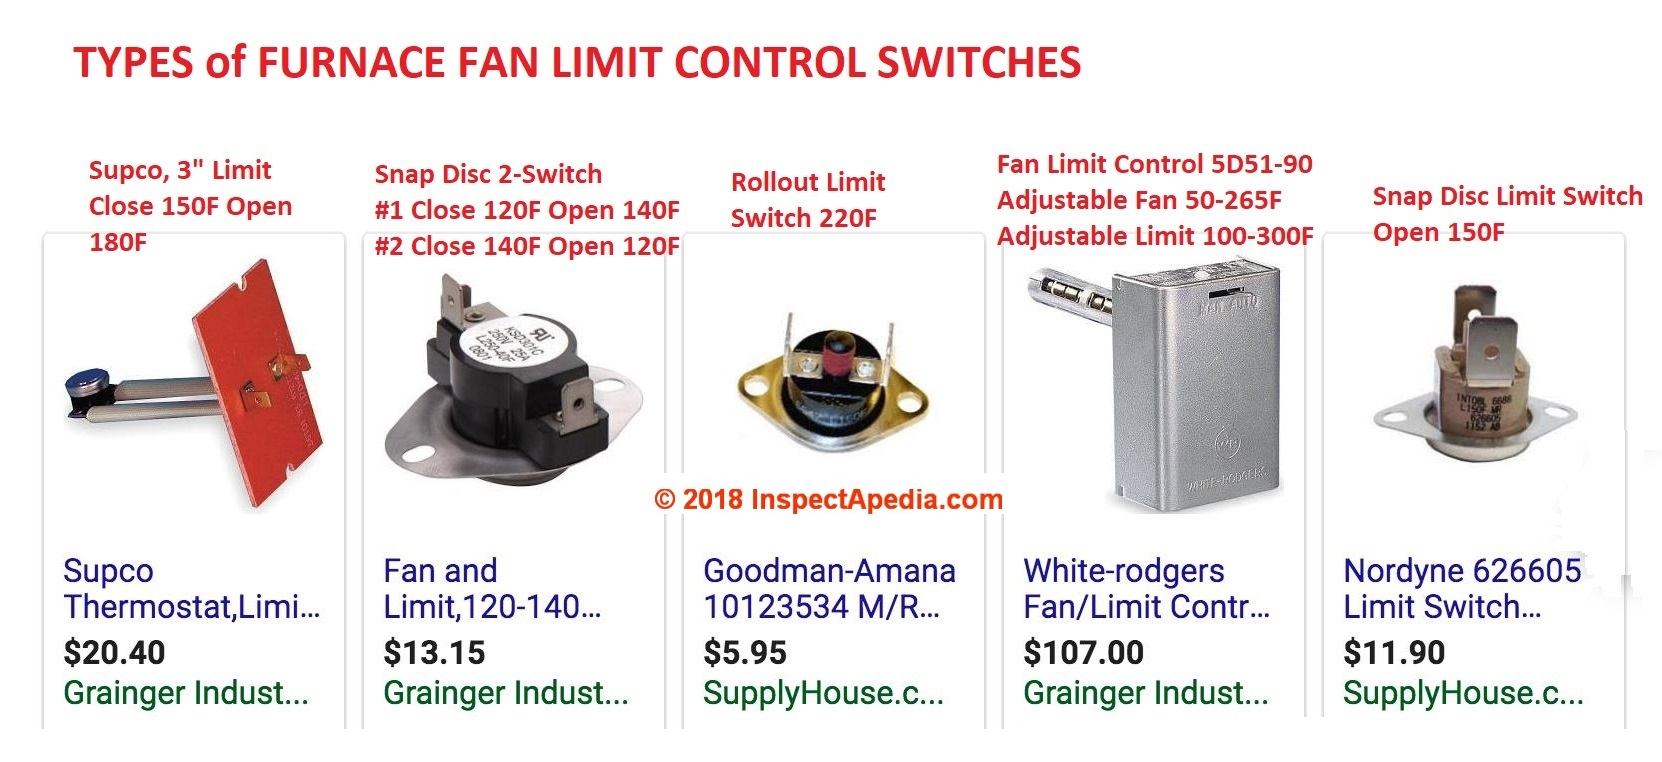 Furnace Fan Limit Switch How Does A Work To Keeprite Wiring Diagram Types Of Control Switches C